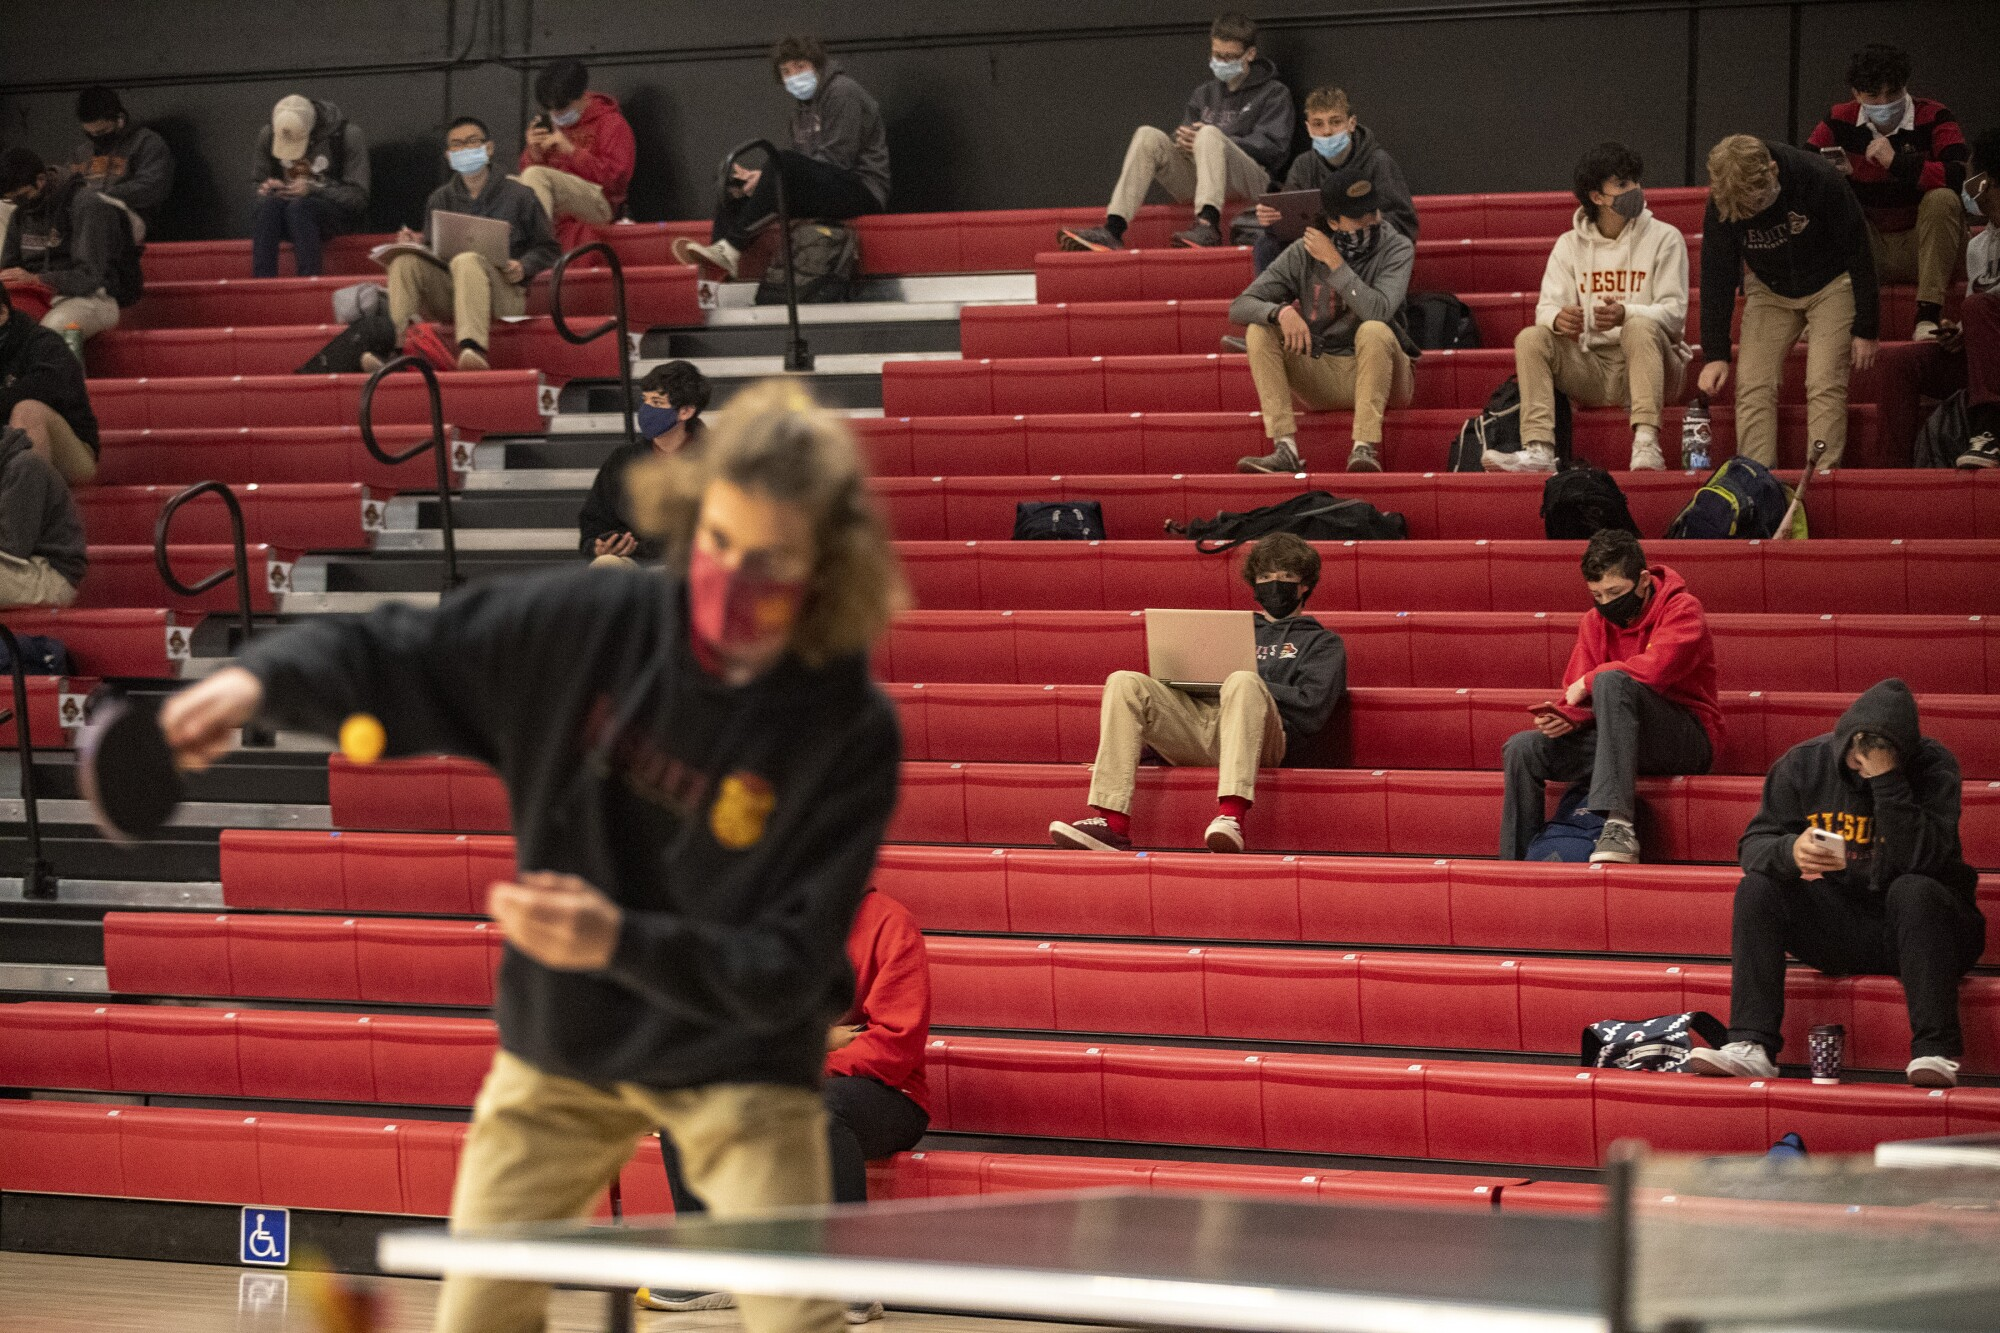 A student plays pingpong while others sit in the school gymnasium bleachers.